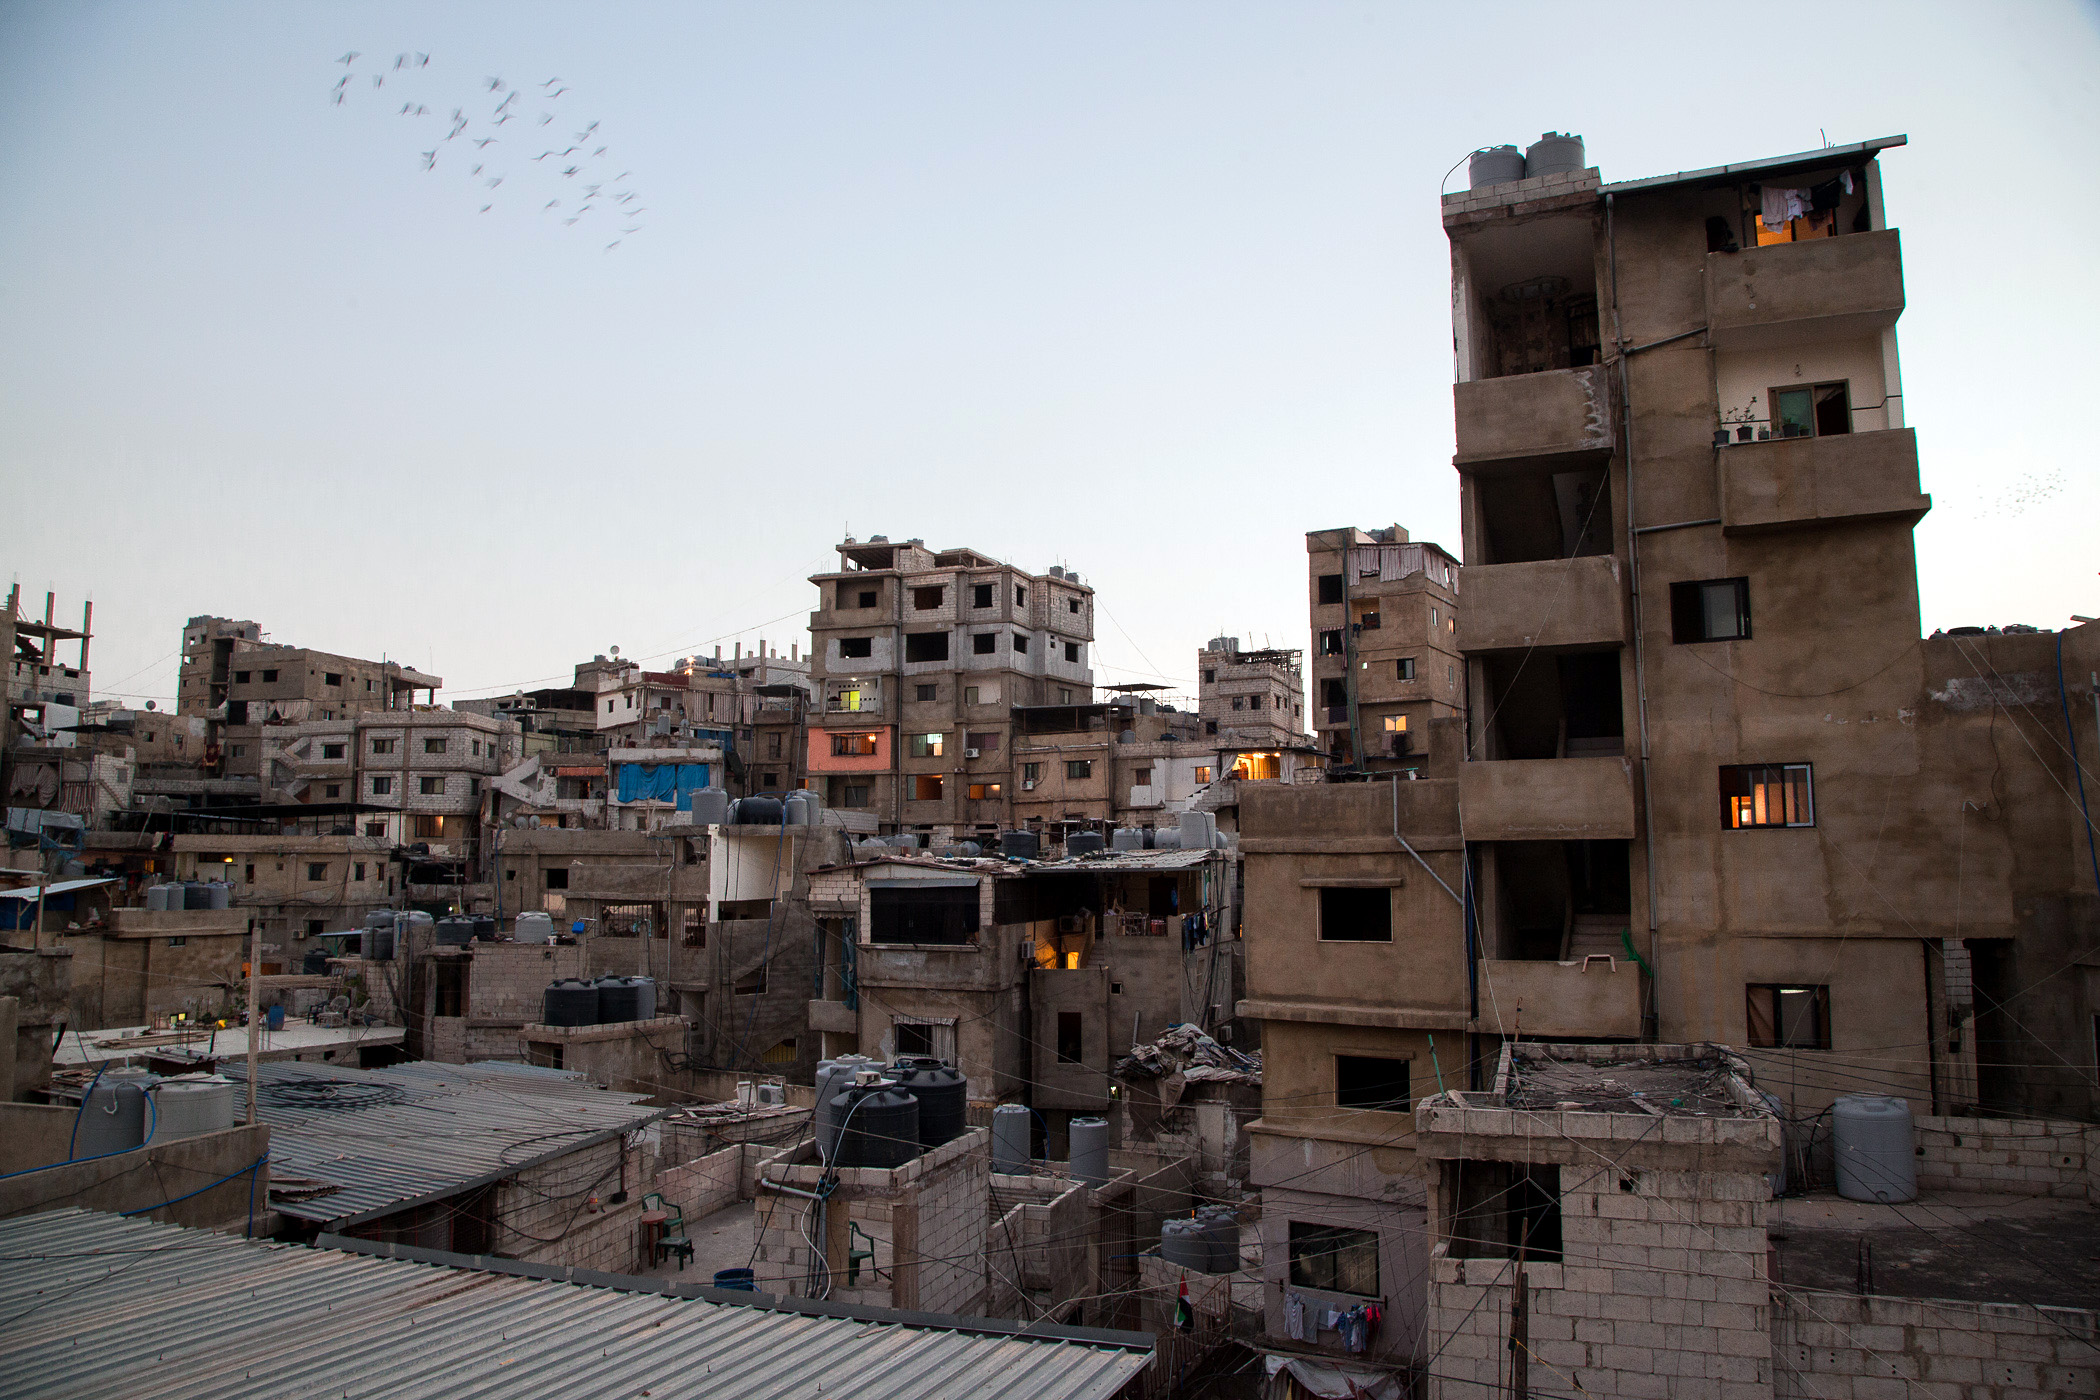 The Bourj el-Barajneh camp for Palestinian refugees in the Lebanese capital Beirut